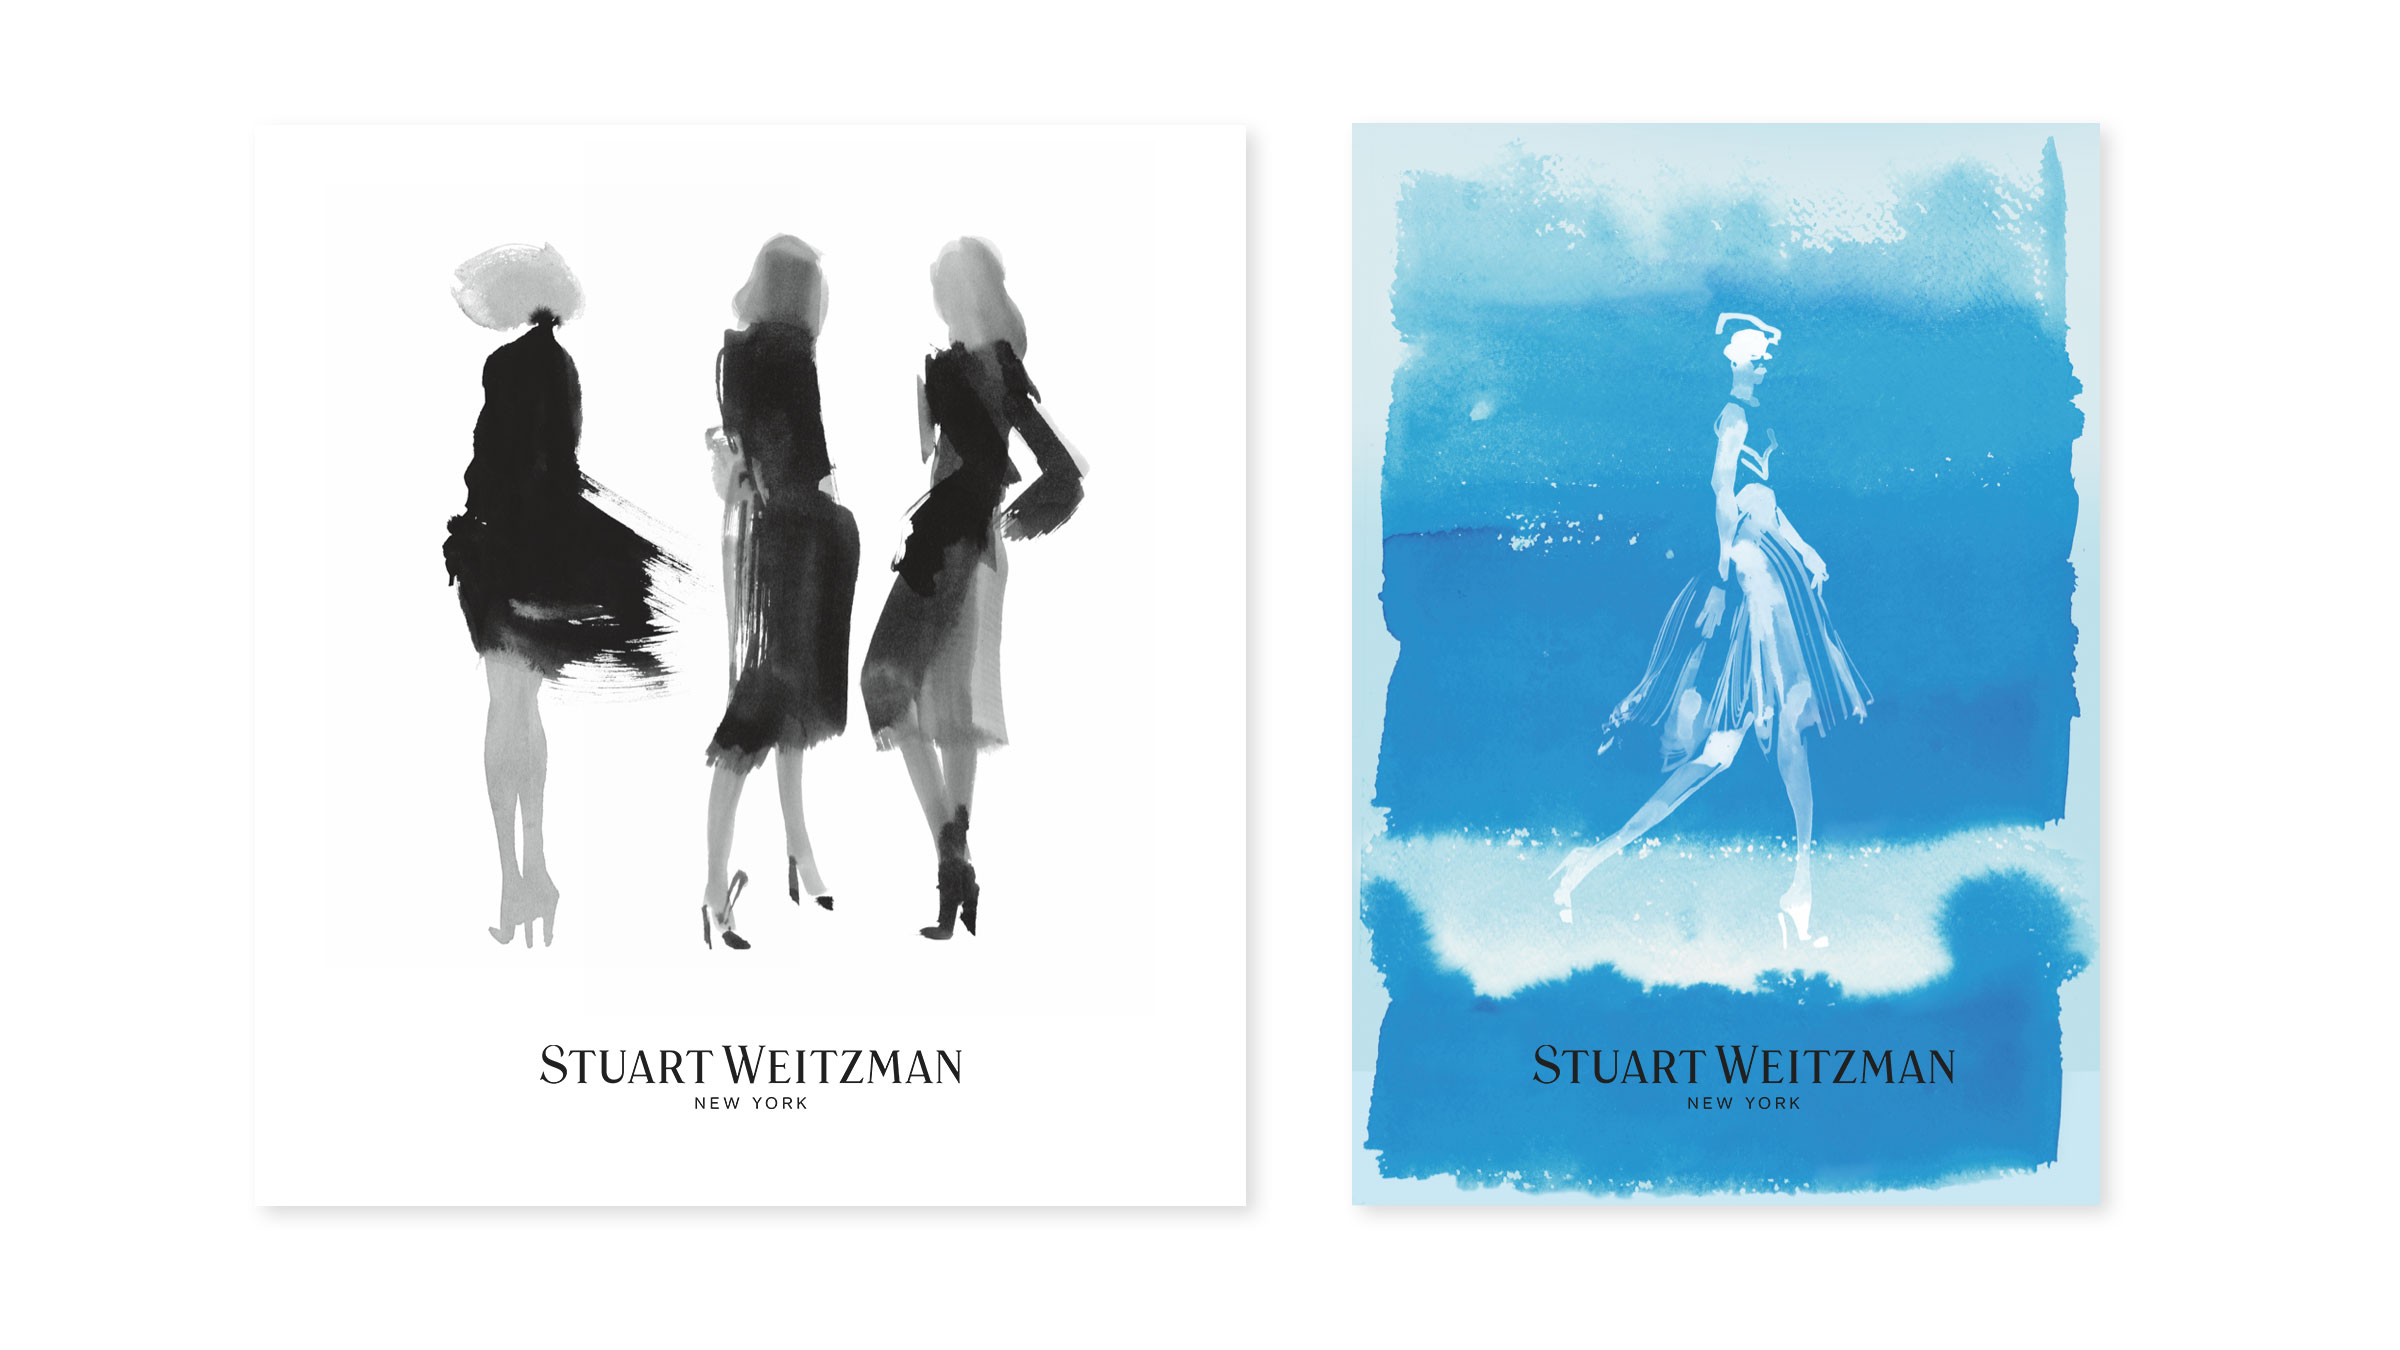 Illustration and Graphic Design for Shoe Brand Stuart Weitzman